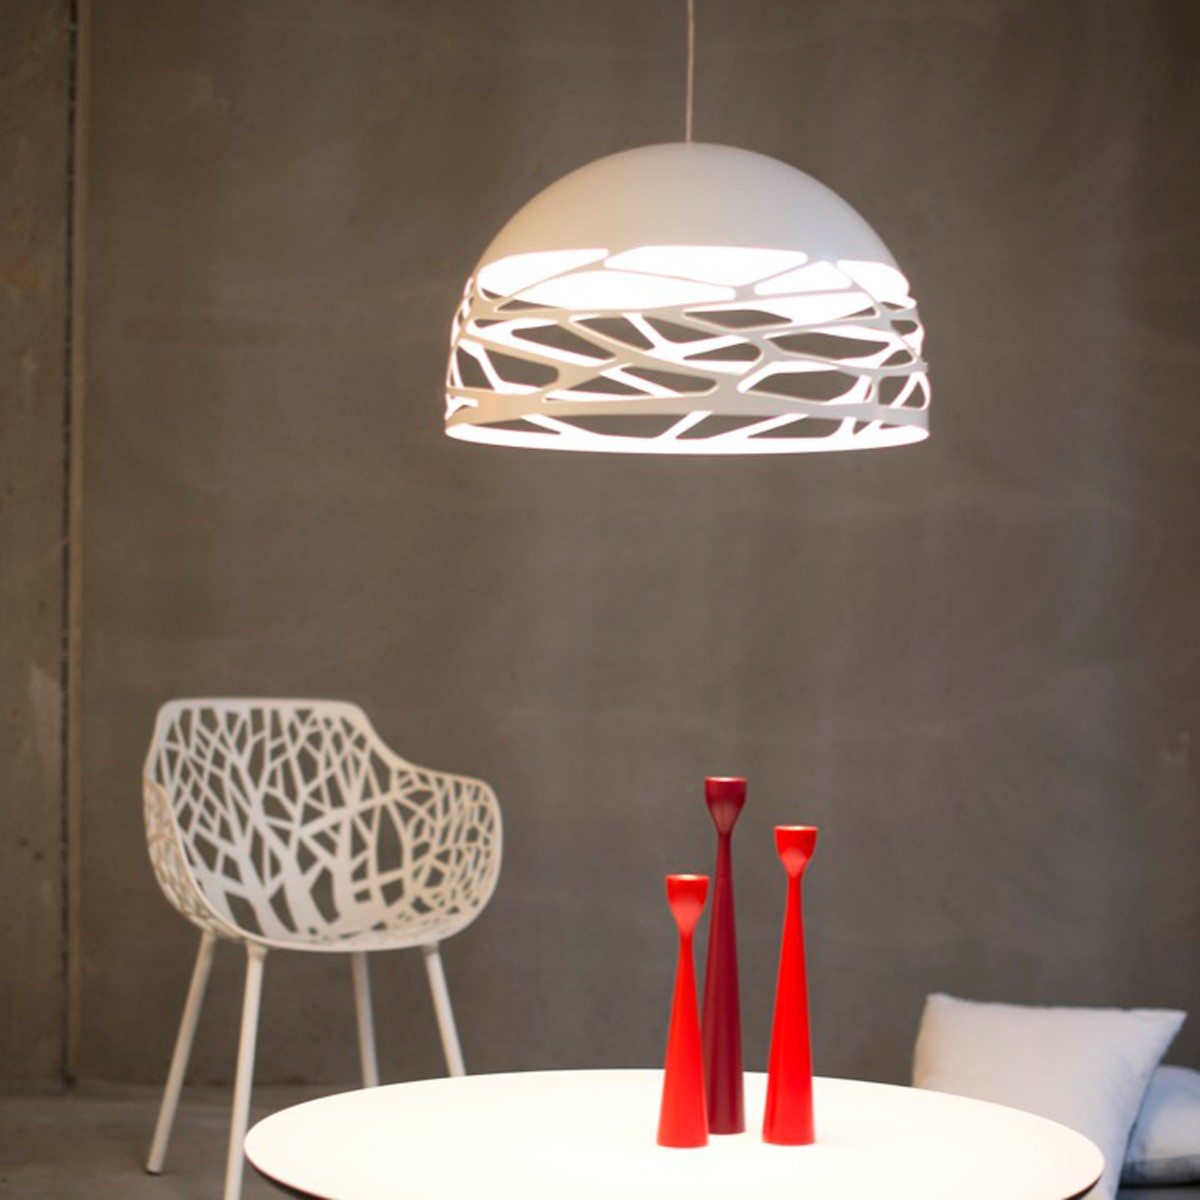 Studio Italia Design Kelly Small Dome 50 Pendelleuchte, weiß matt